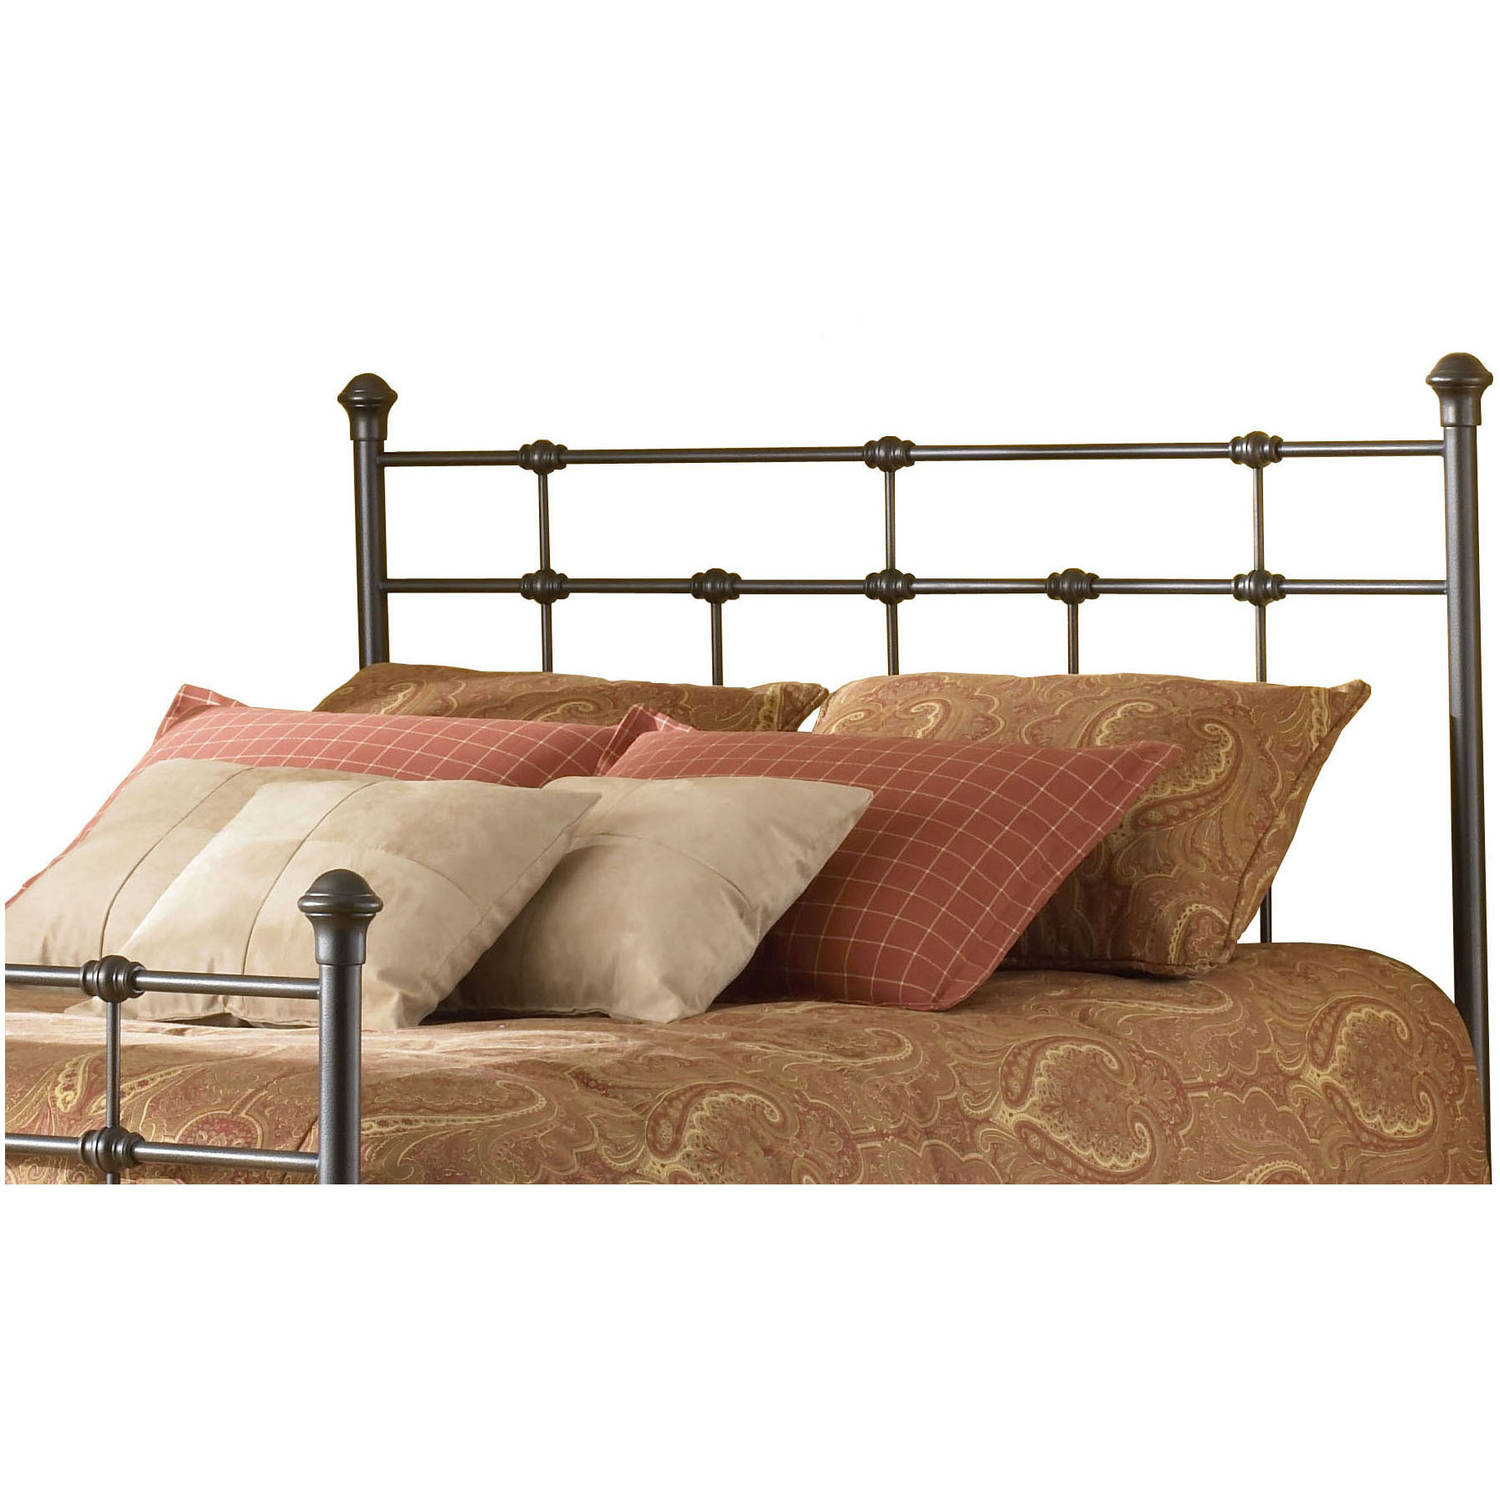 Fashion Bed Group by Leggett & Platt Dexter Metal Hammered Brown Headboard, Multiple Sizes